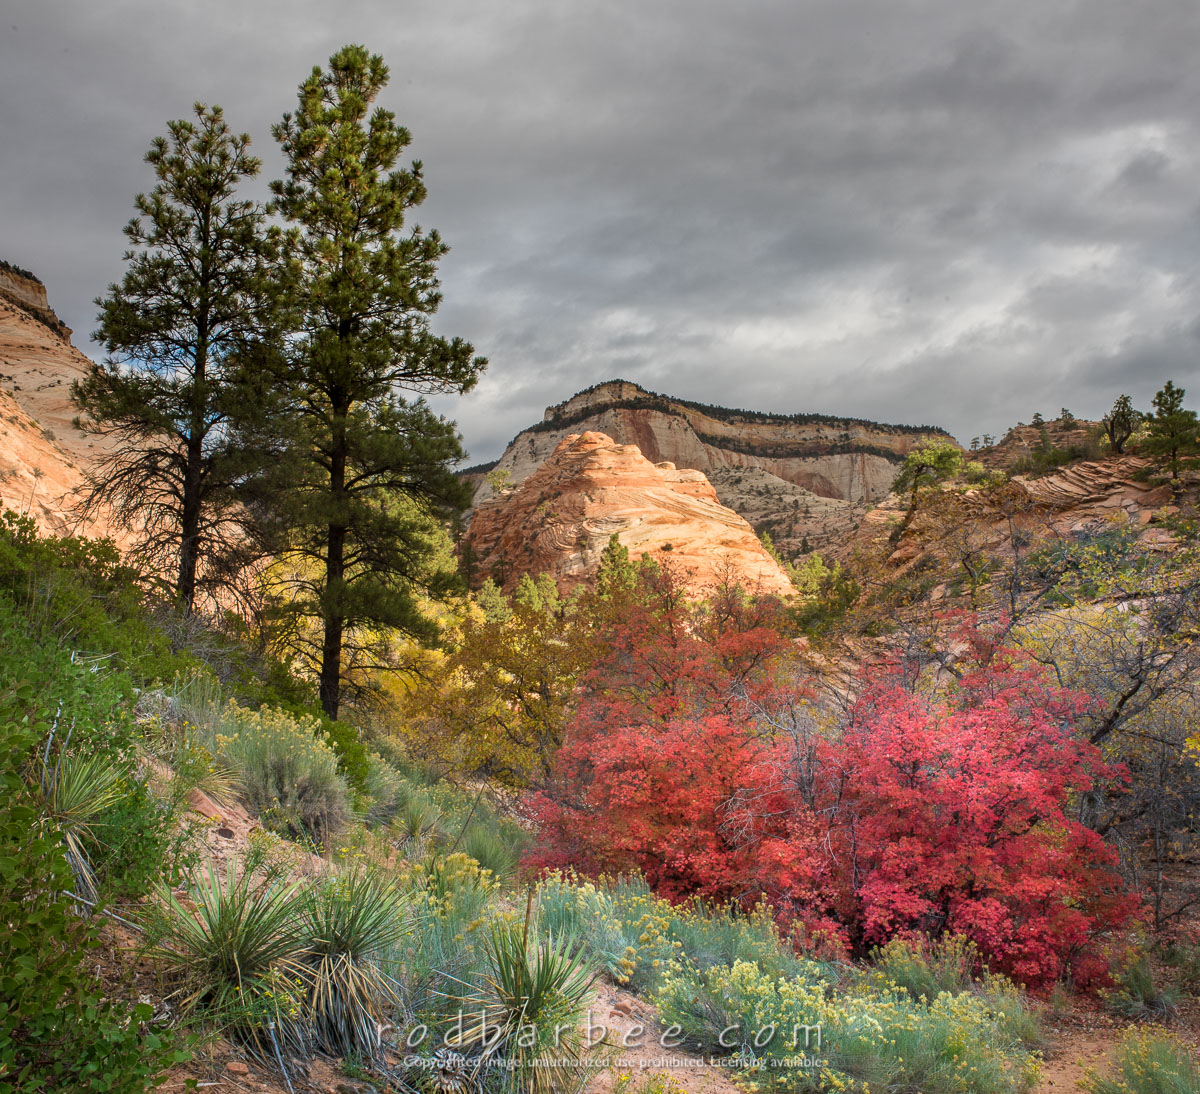 Barbee_161029_9628 |  Fall color in Zion National Park, UT